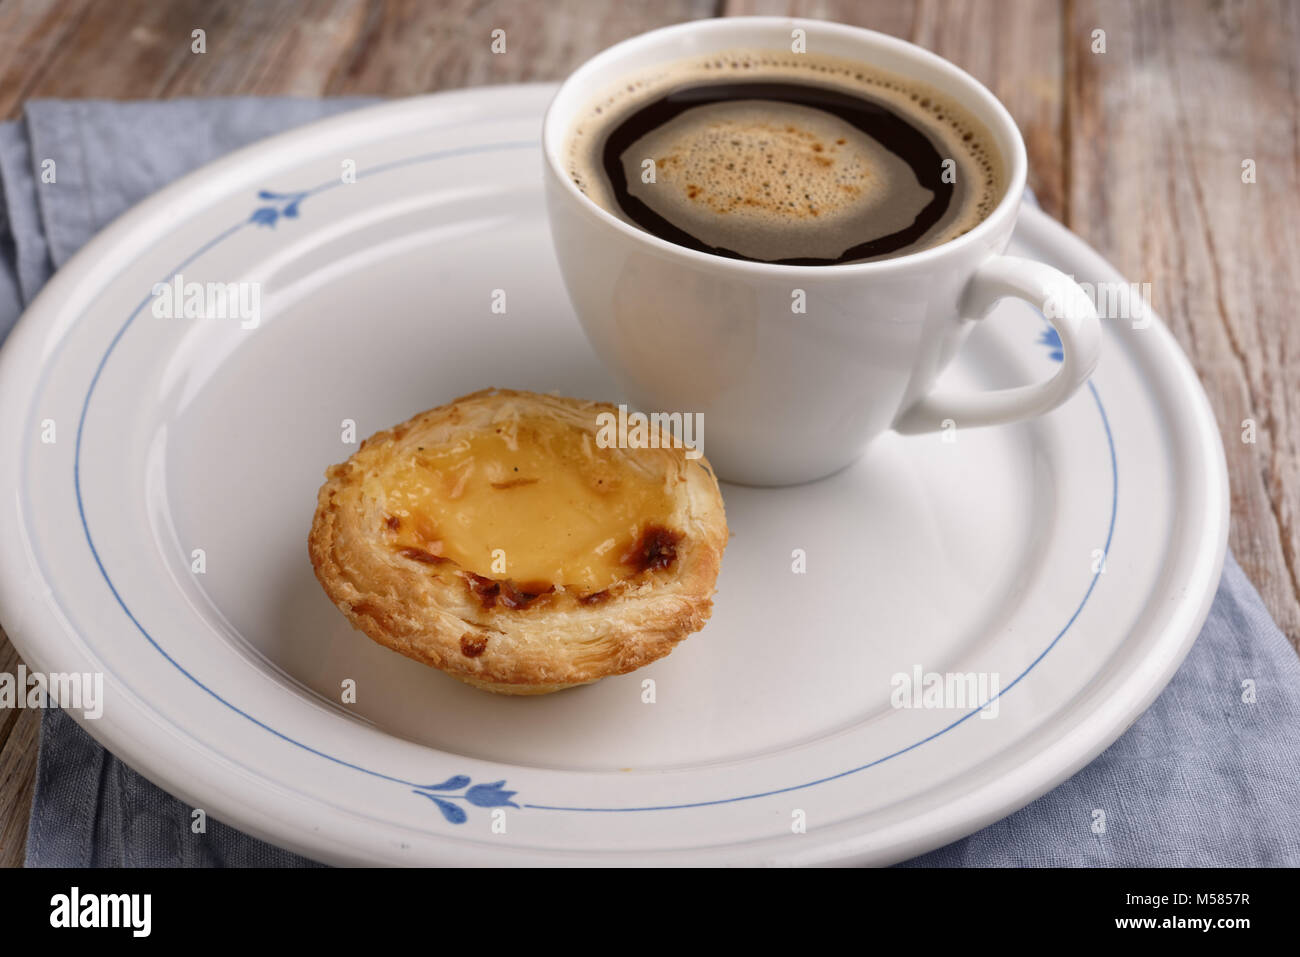 Portuguese egg tart pastry Pastel de nata on a plate with a cup of black coffee - Stock Image